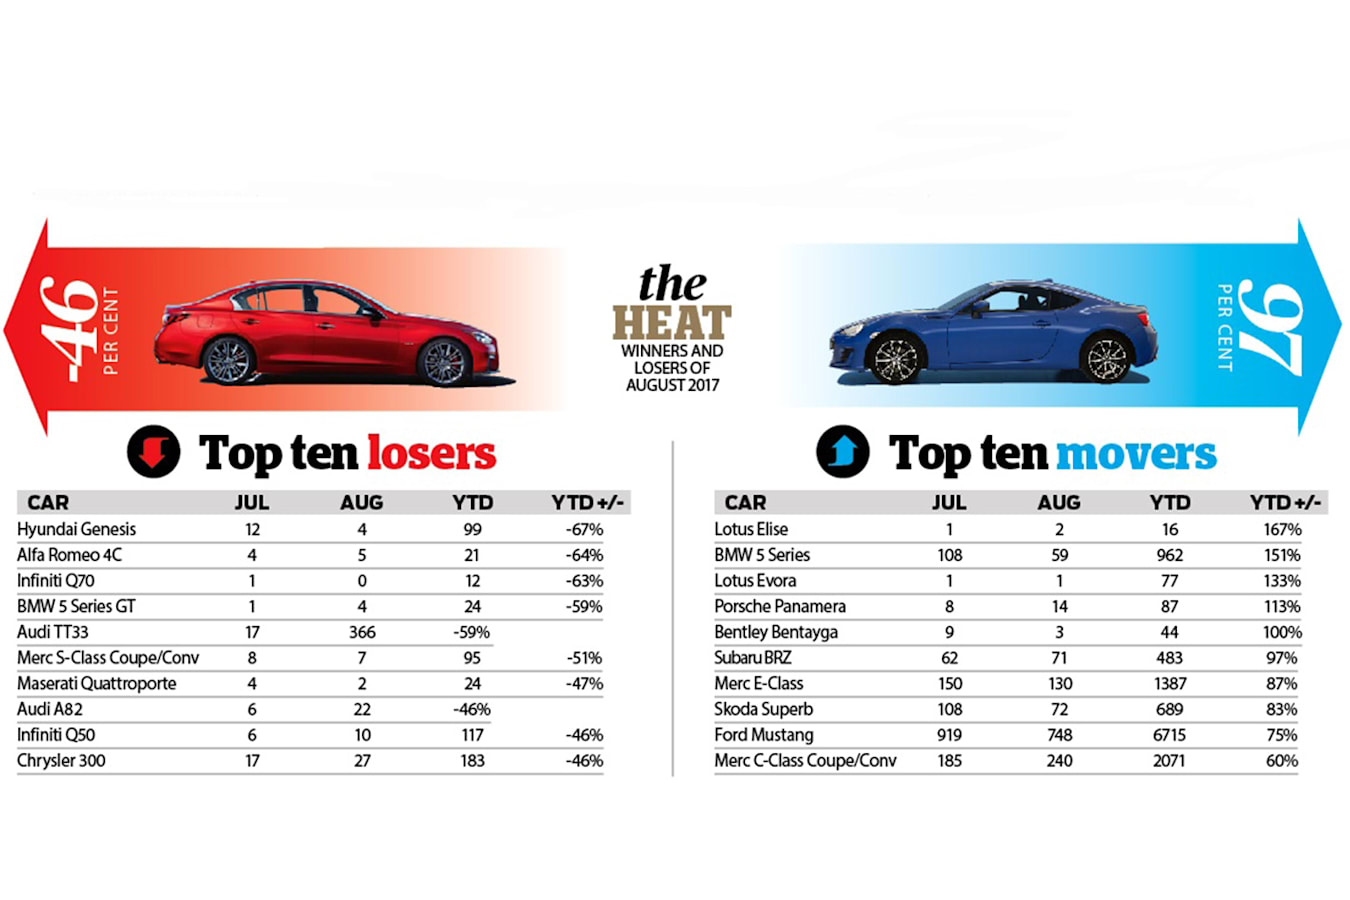 Affordable-sports-car-propping-up-the-market-graph.jpg